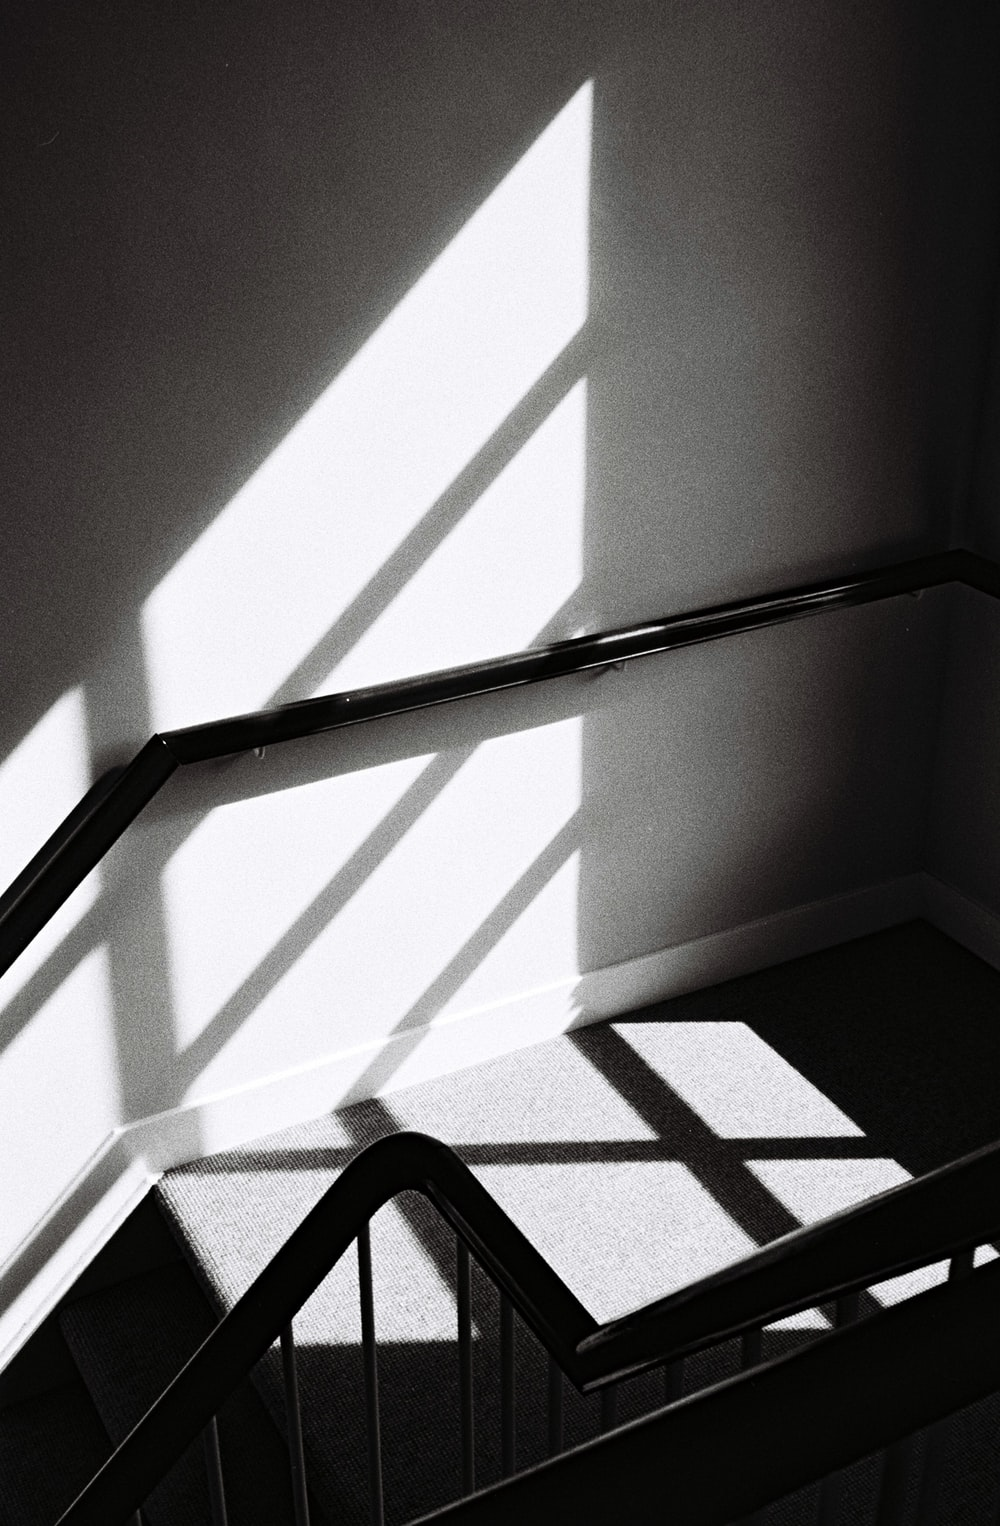 grayscale photo of stairs and handrail